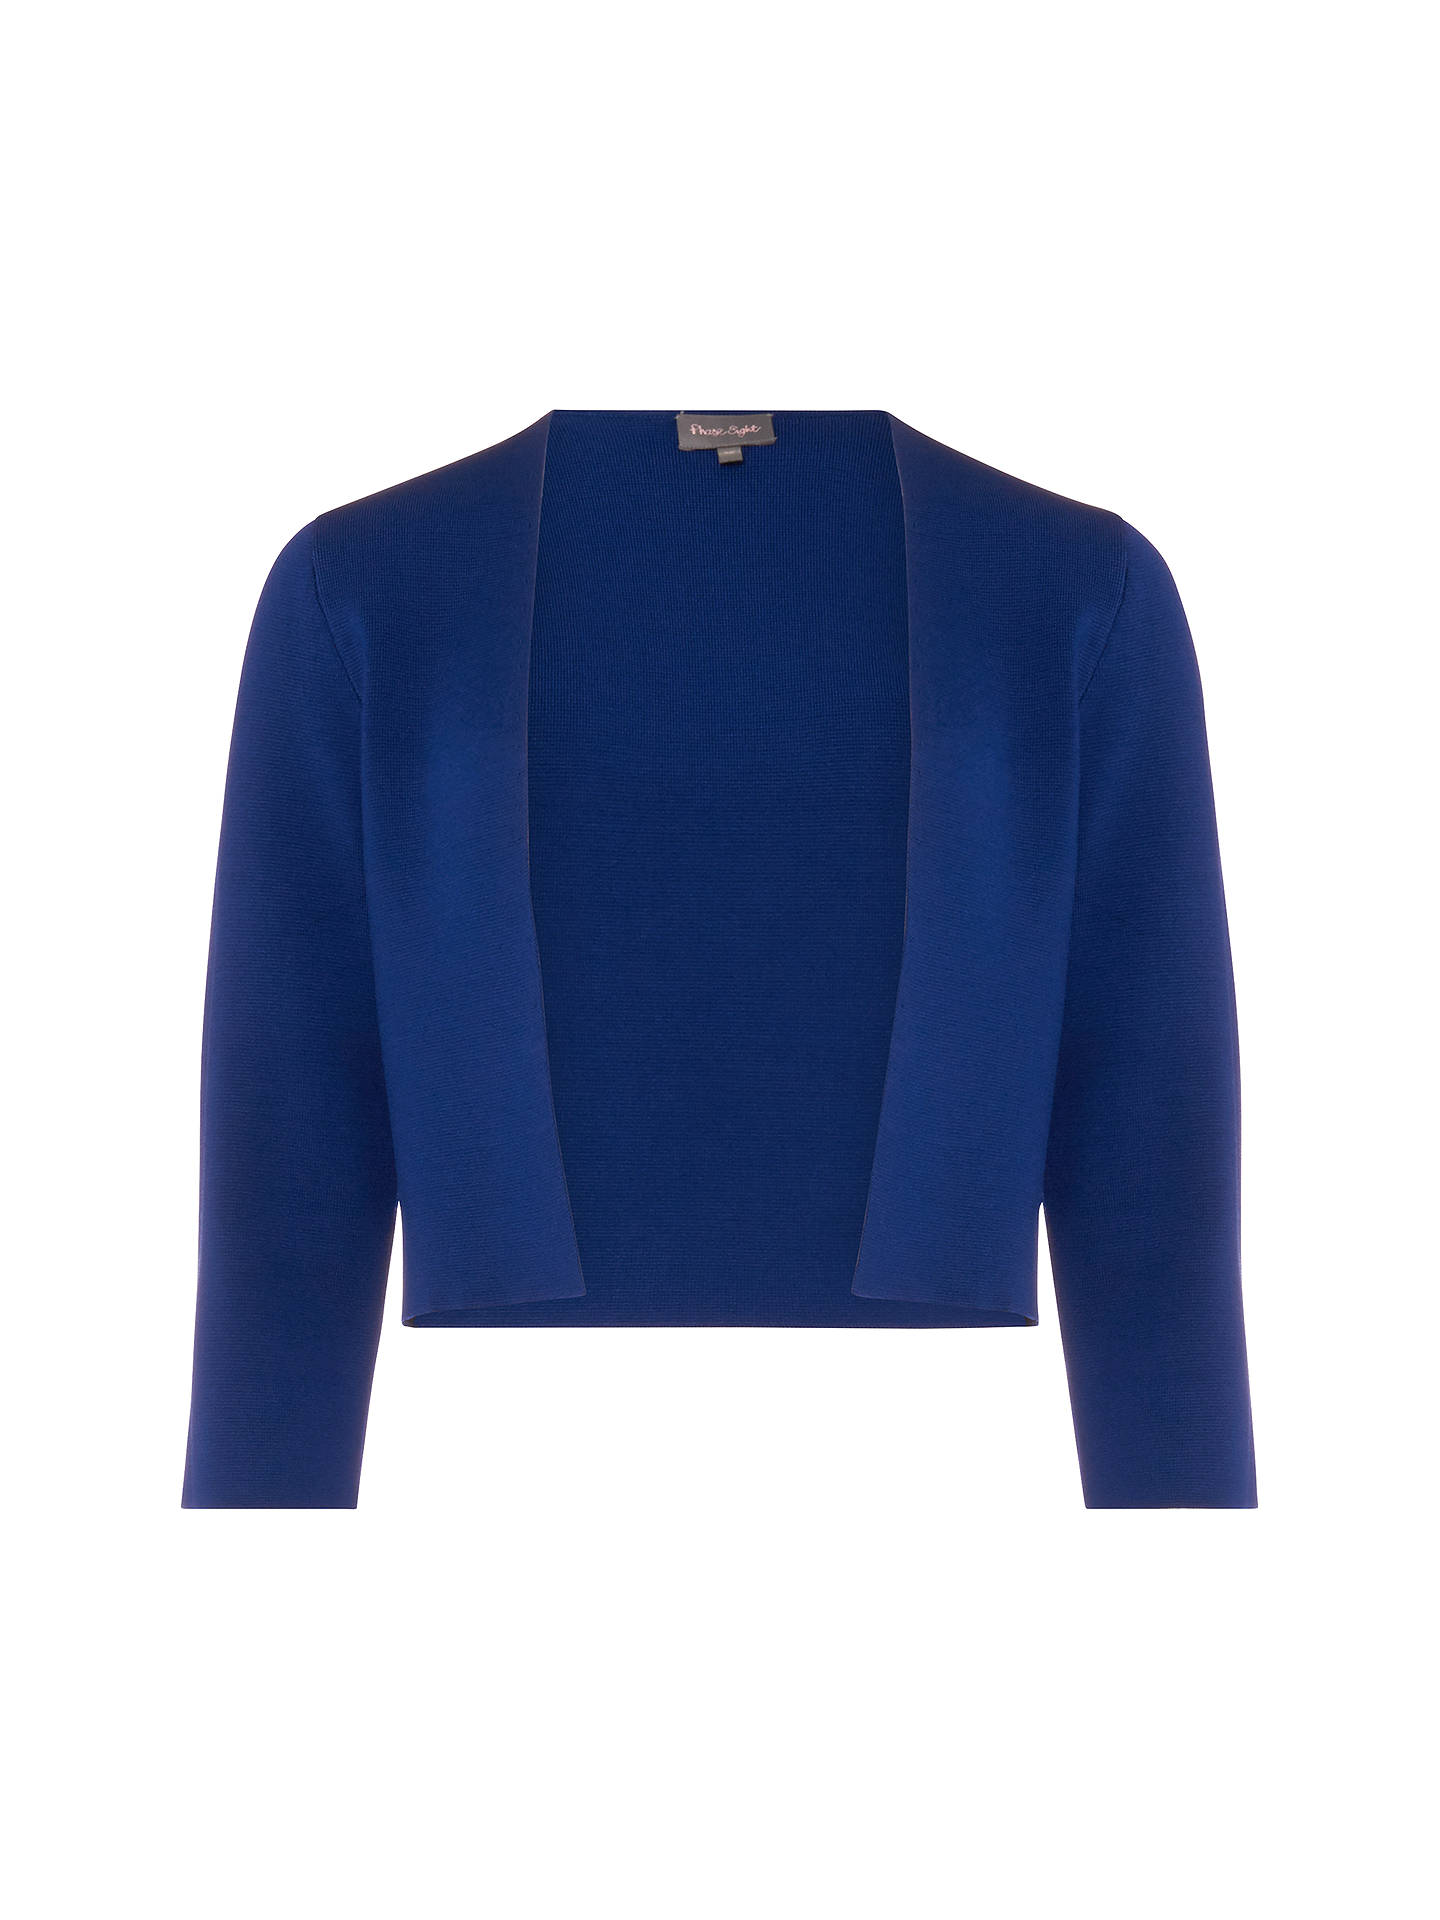 BuyPhase Eight Salma Knitted Jacket, Cobalt, 8 Online at johnlewis.com